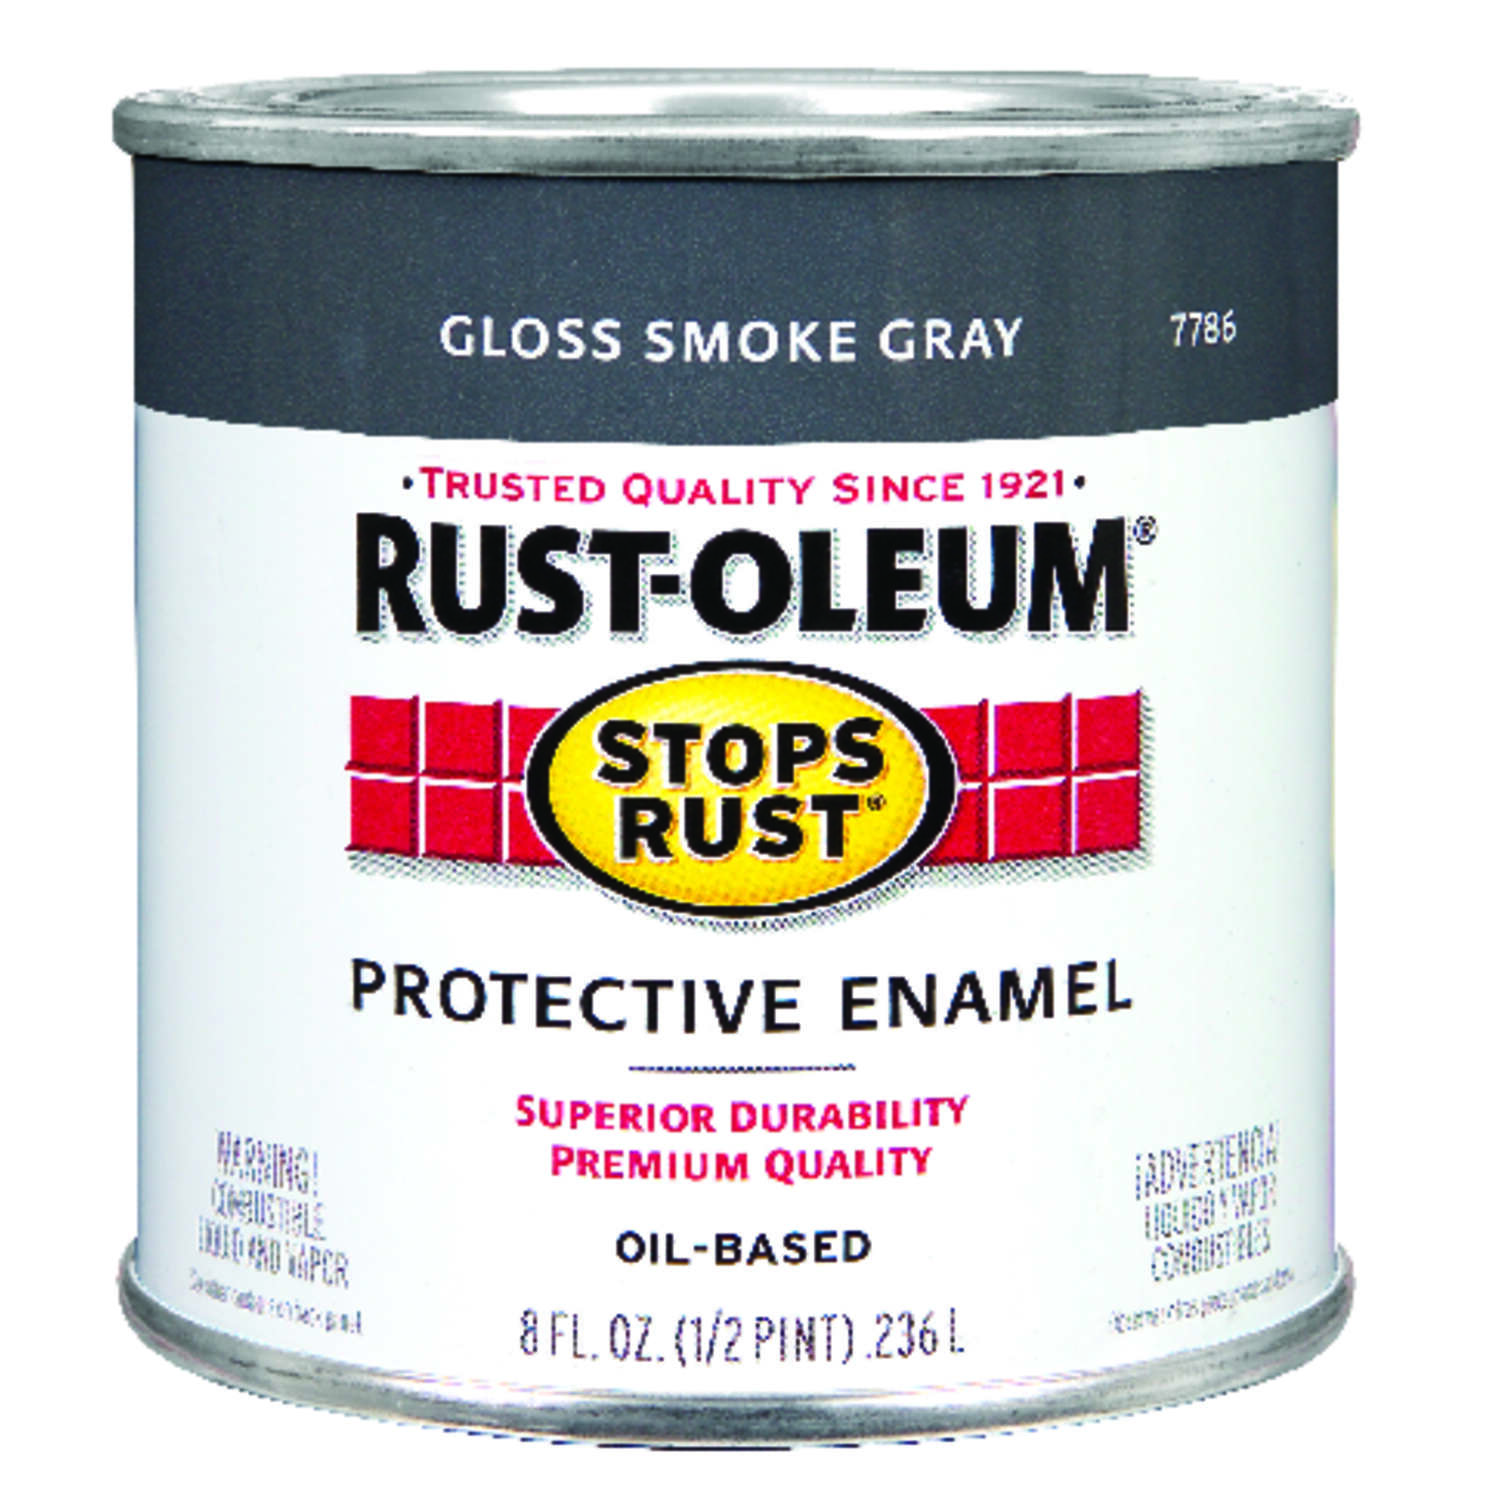 Rust-Oleum  Stops Rust  Indoor and Outdoor  Gloss  Smoke Gray  Oil-Based  Protective Paint  0.5 pt.